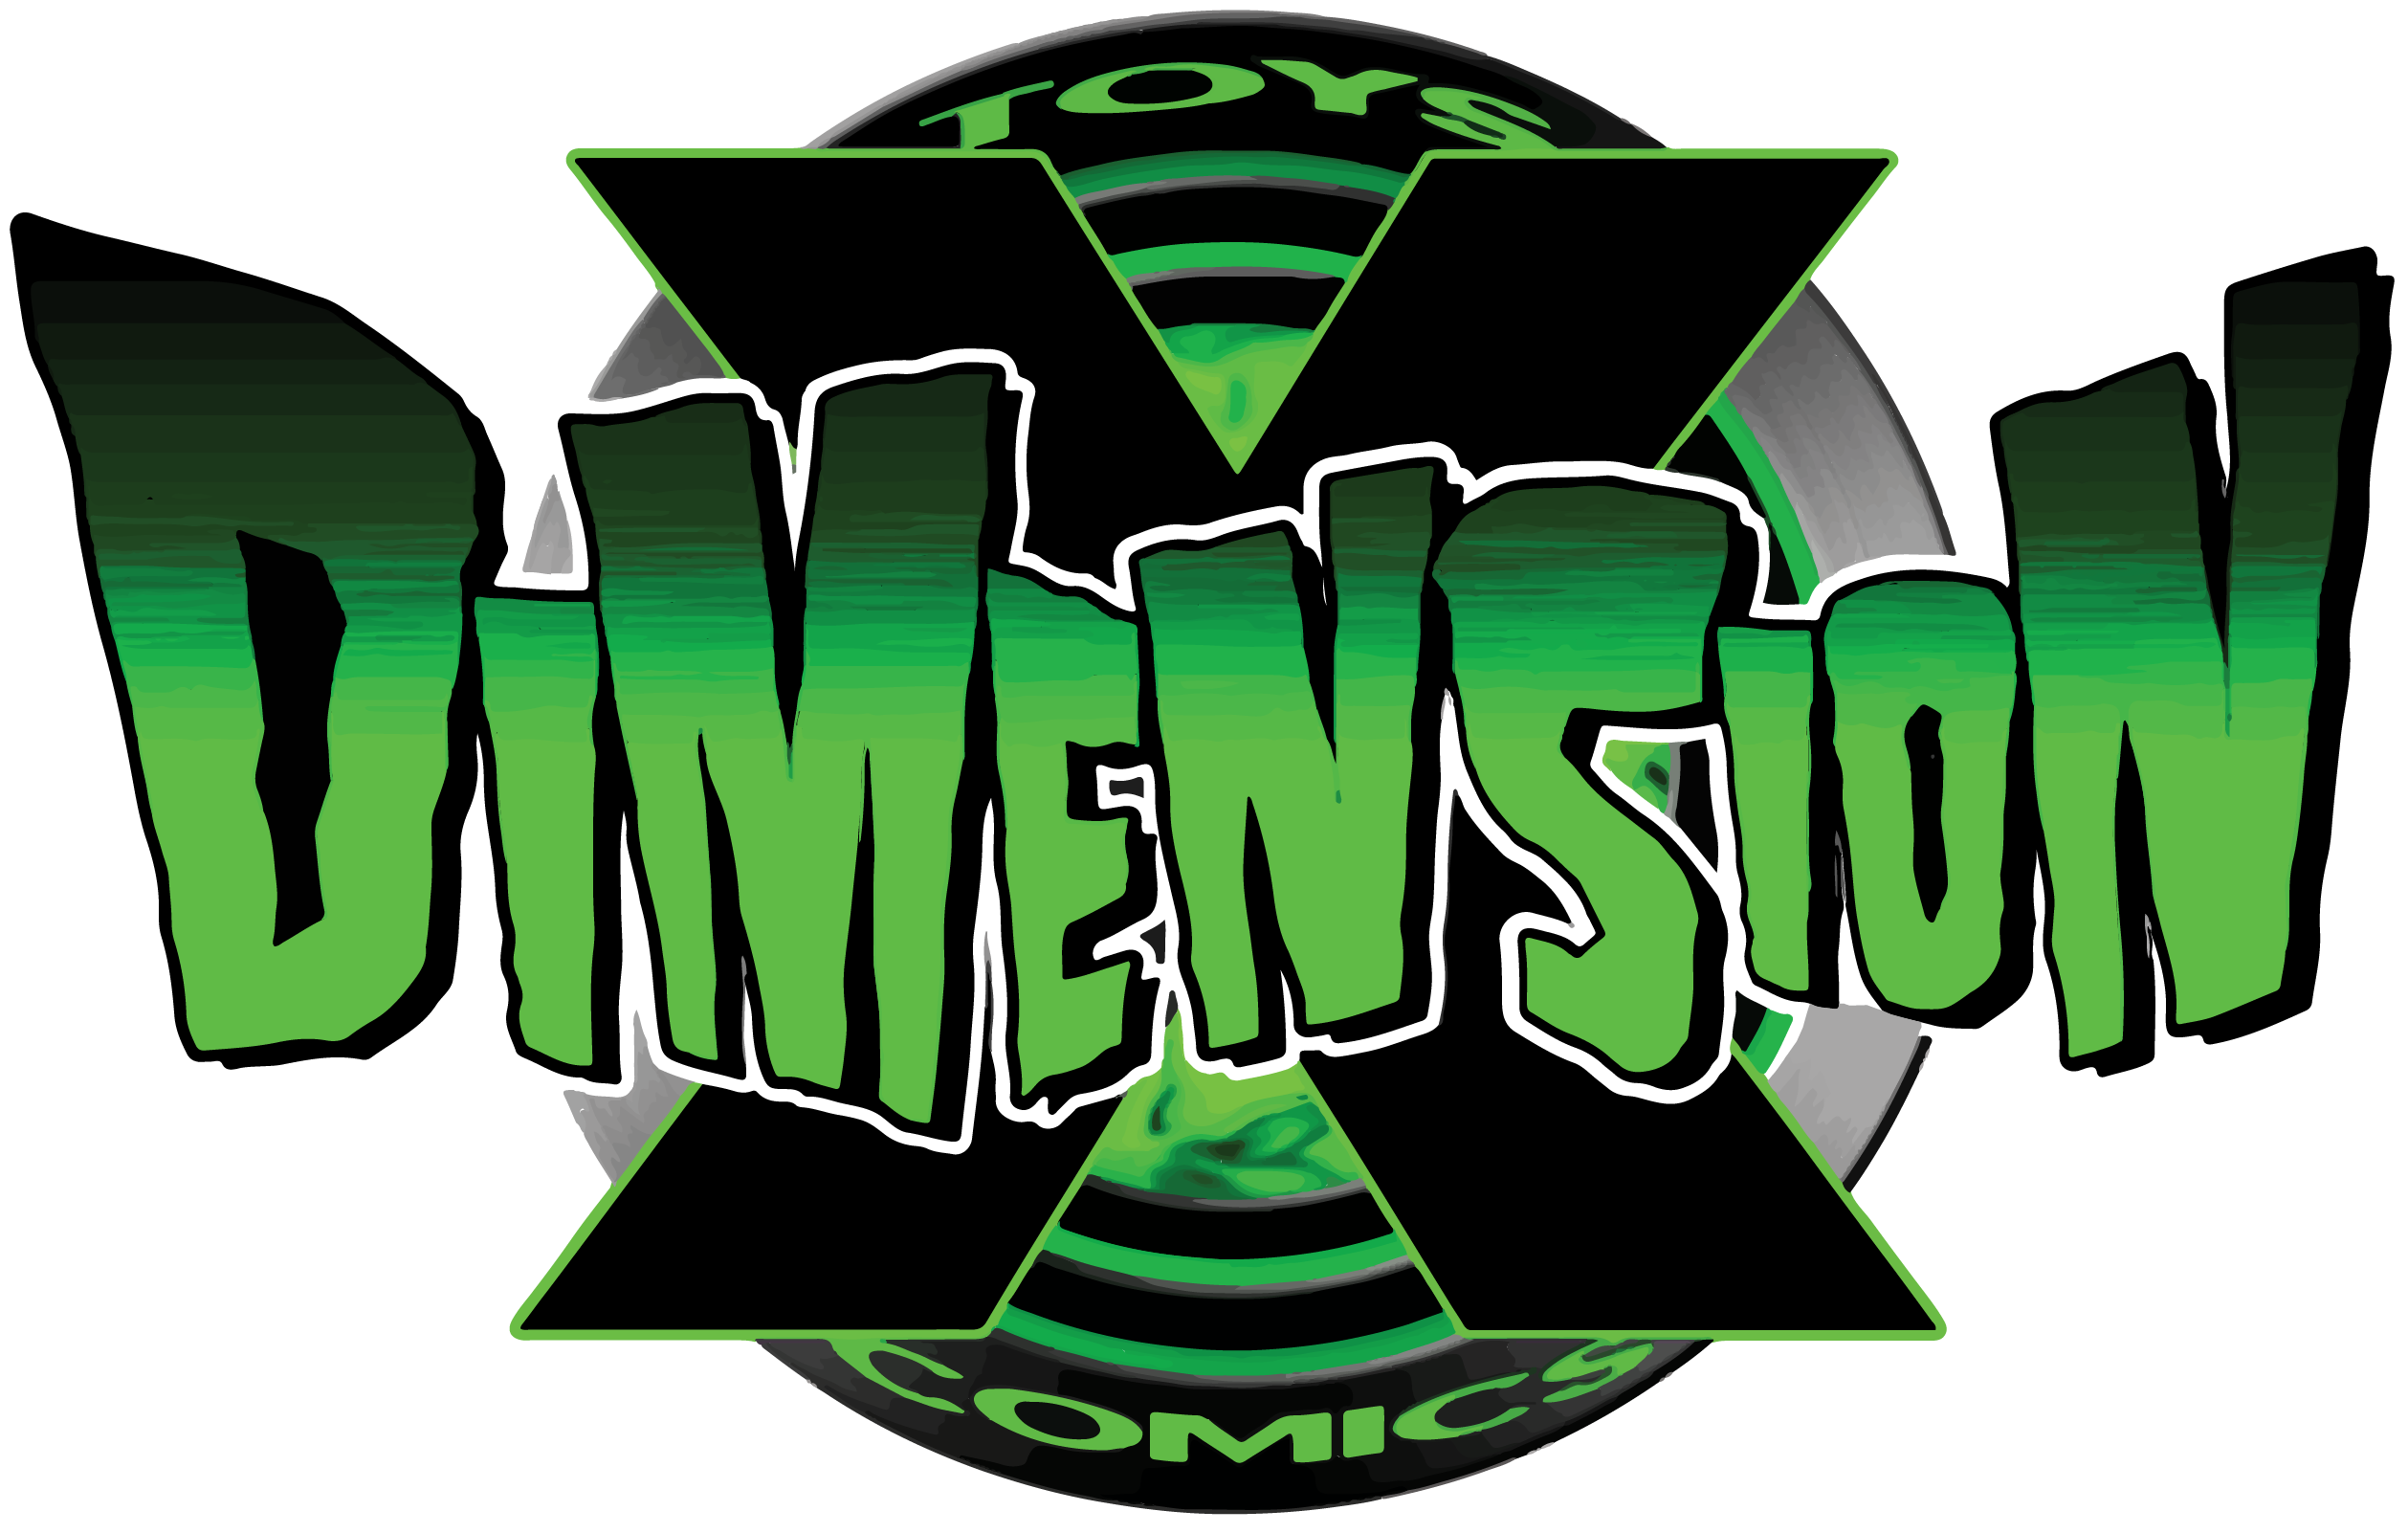 Dimension X Comics